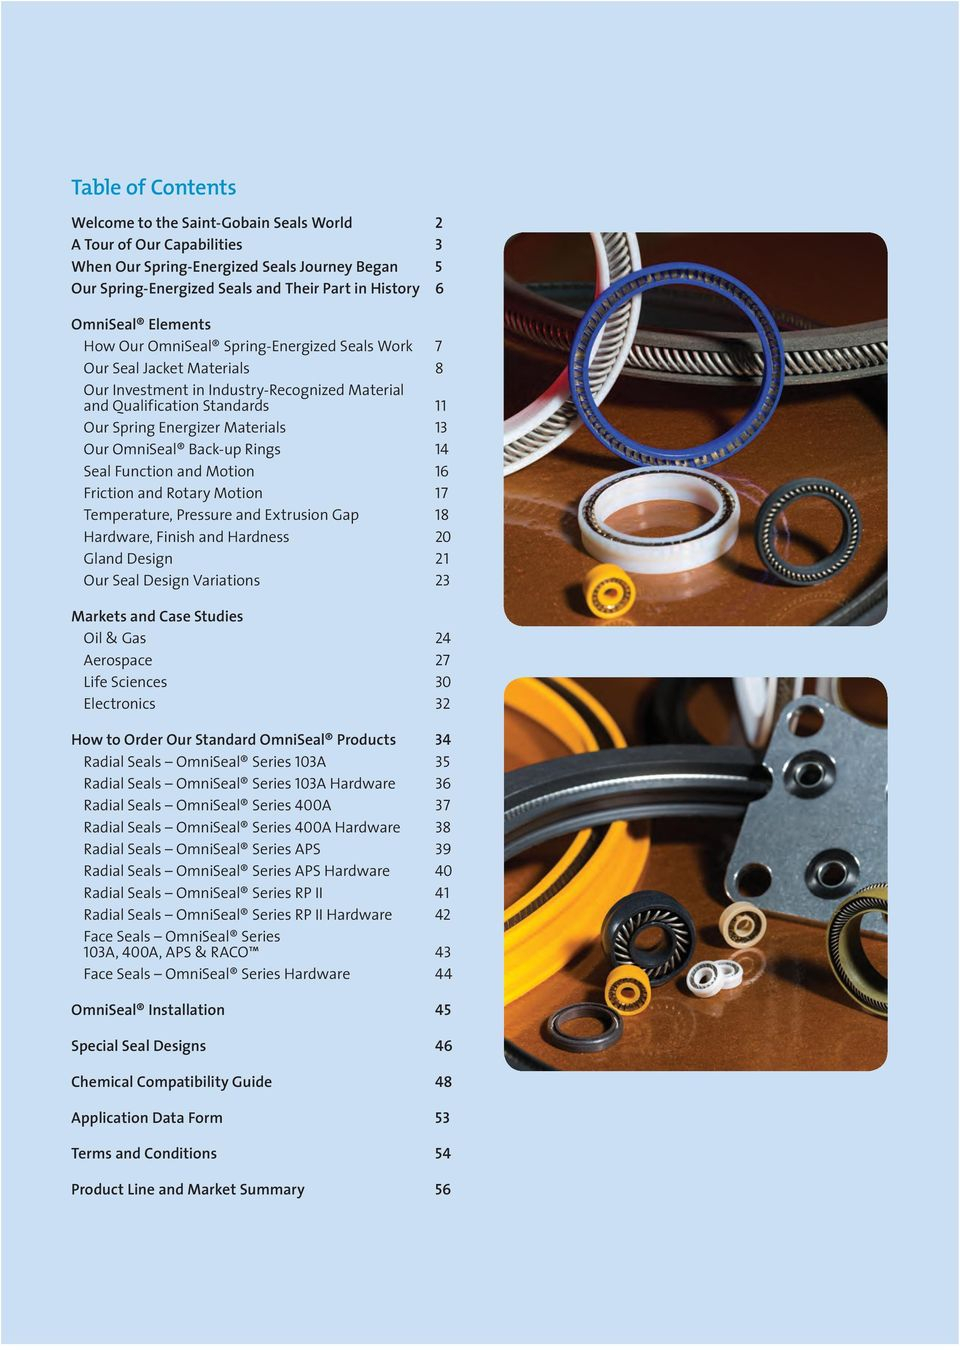 qualitrol liquid level gauge wiring diagram Download-Qualitrol Liquid Level Gauge Wiring Diagram New Saint Gobain Seals Innovative Sealing & Polymer Product Handbook 18-c